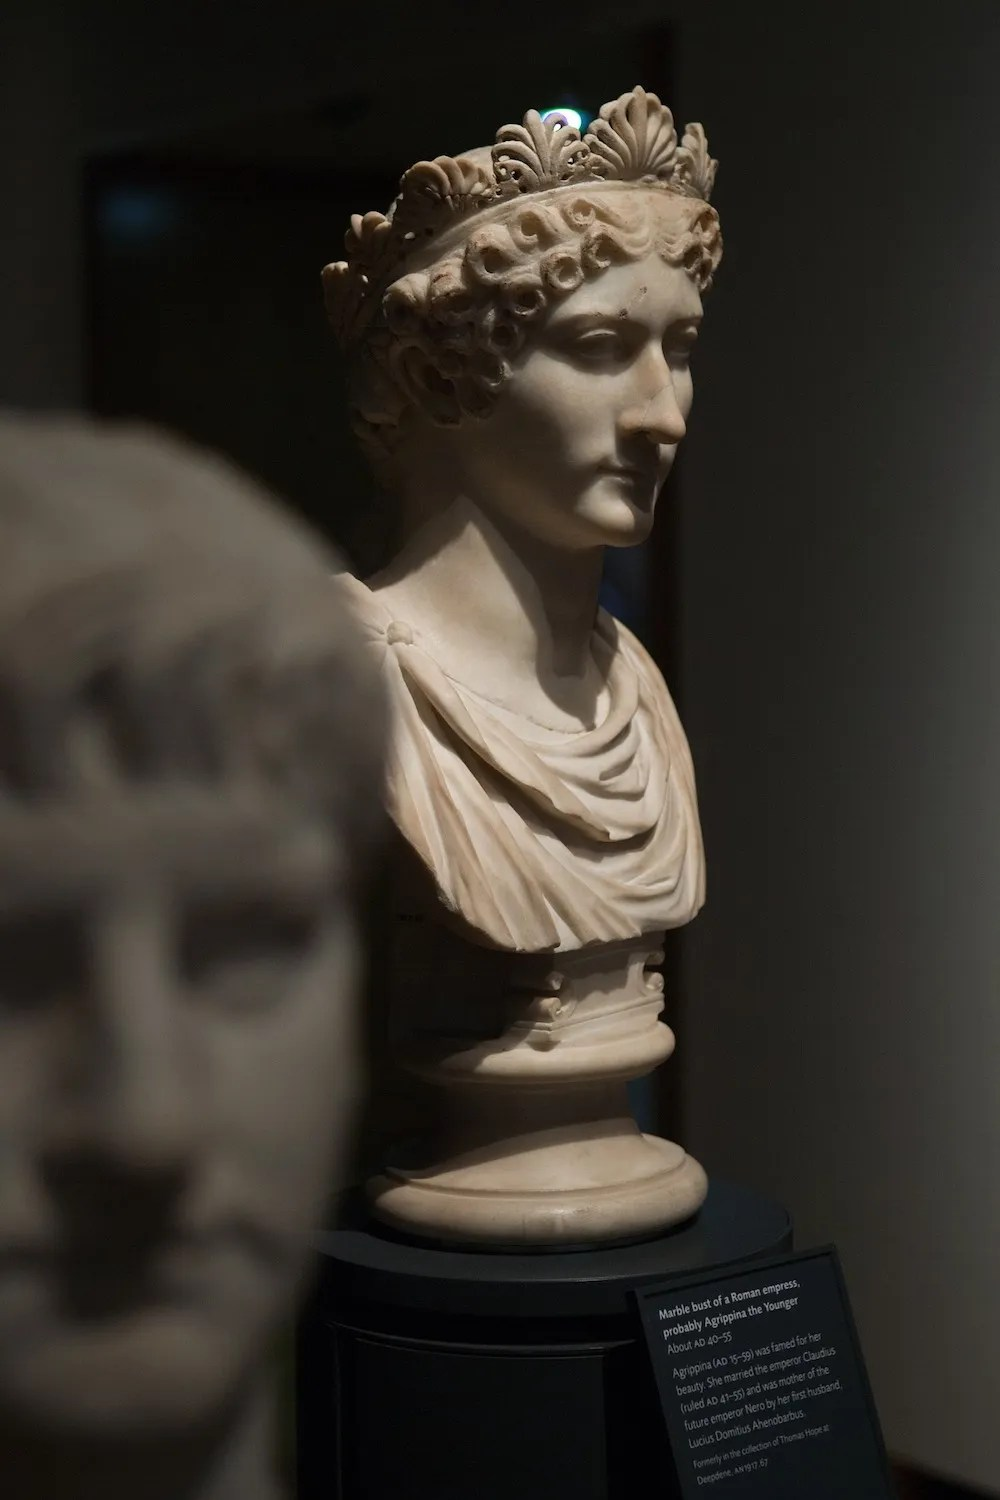 Bust at the Ashmolean in Oxford